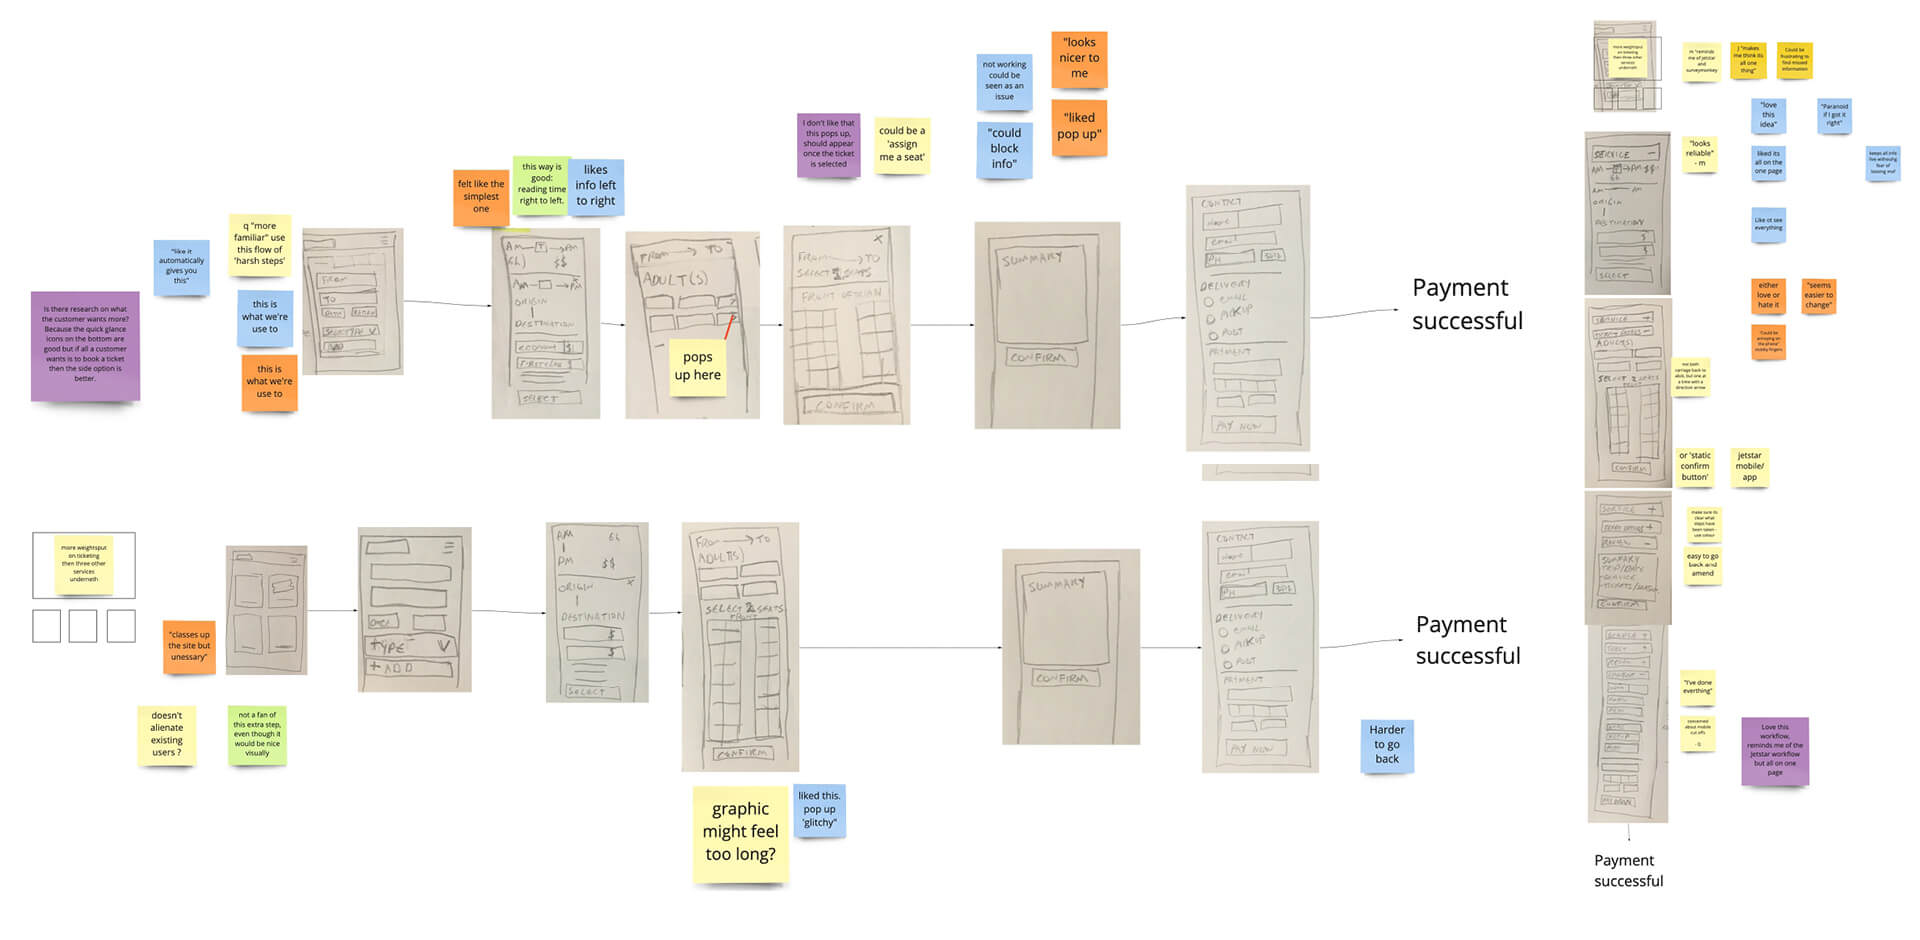 UX_design_Vline_Workshop_Affinity_Map